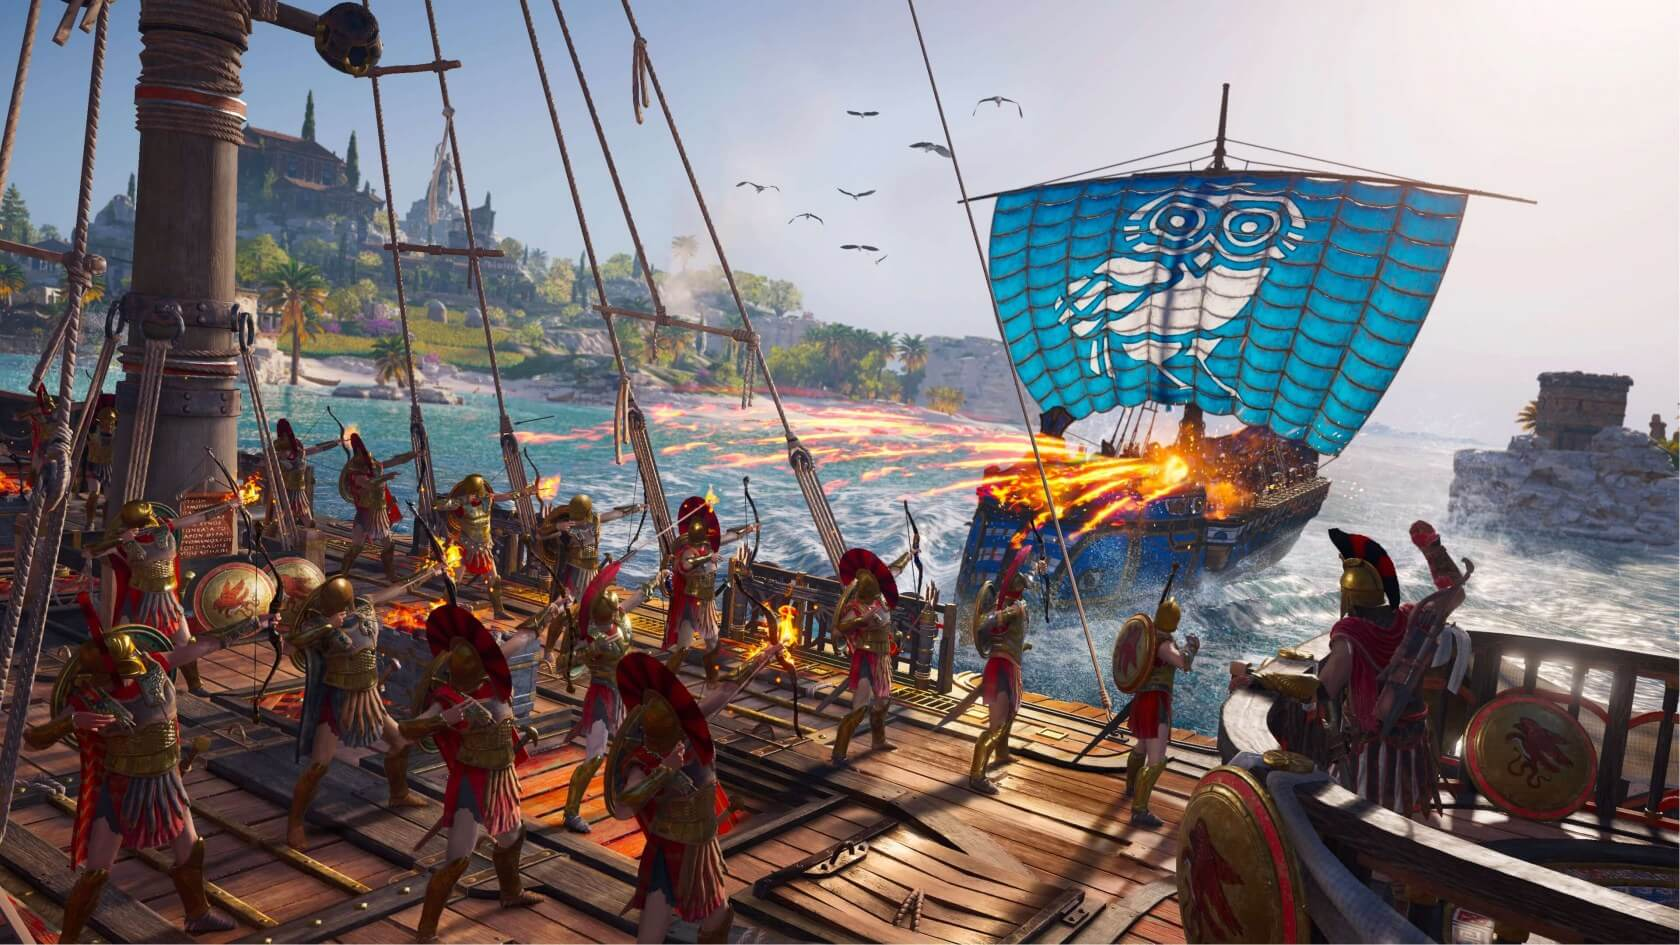 لعبة Assassin's Creed Odyssey